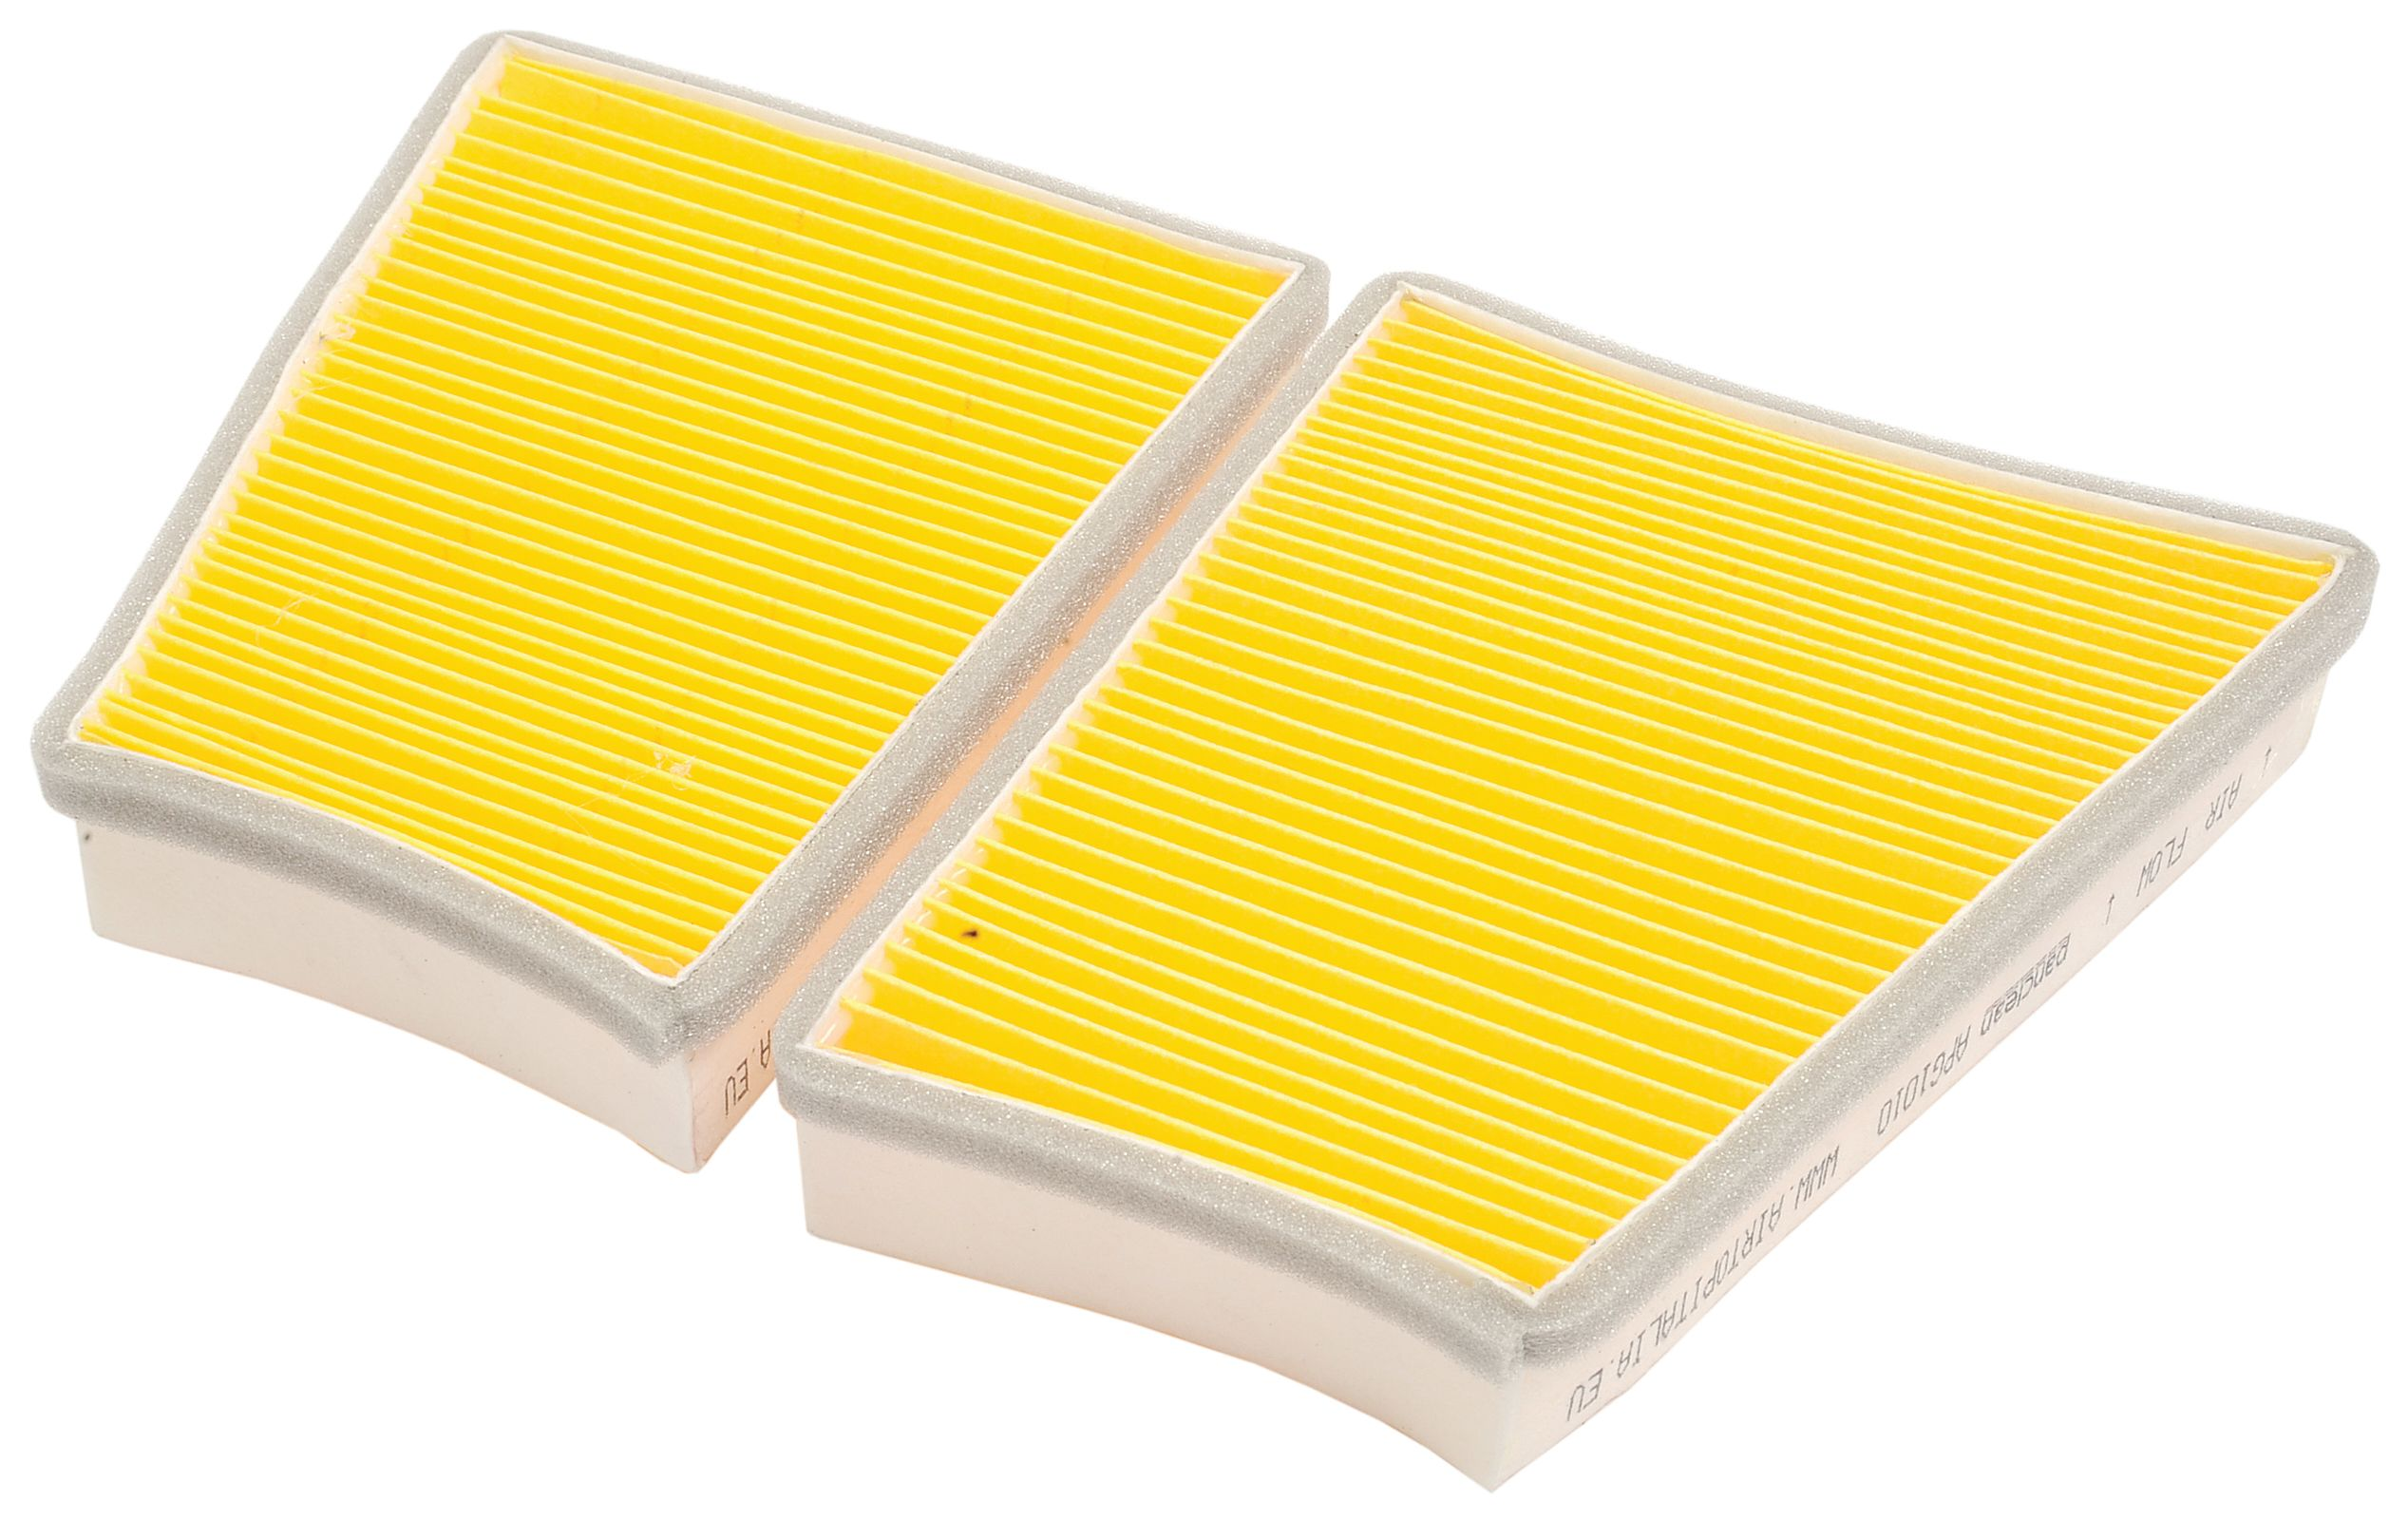 JOHN DEERE DUST FILTER KIT X 2 105535